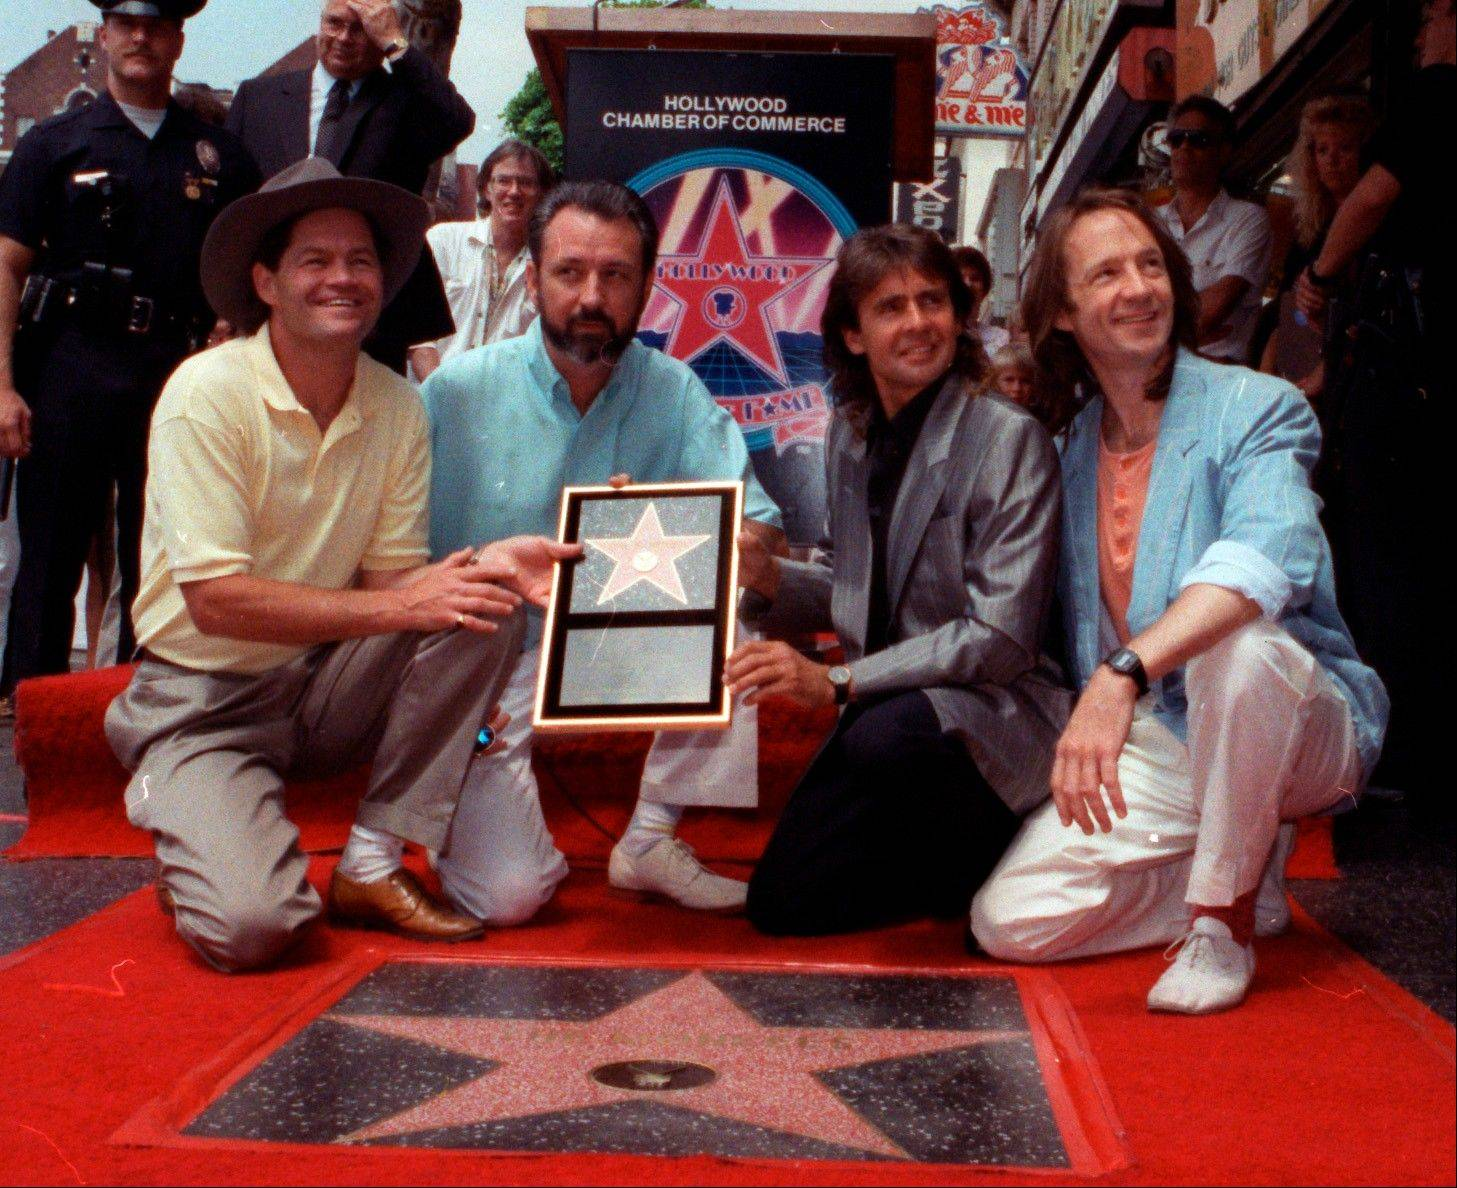 In this July 10, 1989 file photo, The Monkees, from left: Micky Dolenz, Mike Nesmith, Davy Jones and Peter Tork get a star on the Hollywood Walk of Fame in Los Angeles. Jones died Wednesday Feb. 29, 2012 in Florida. He was 66.